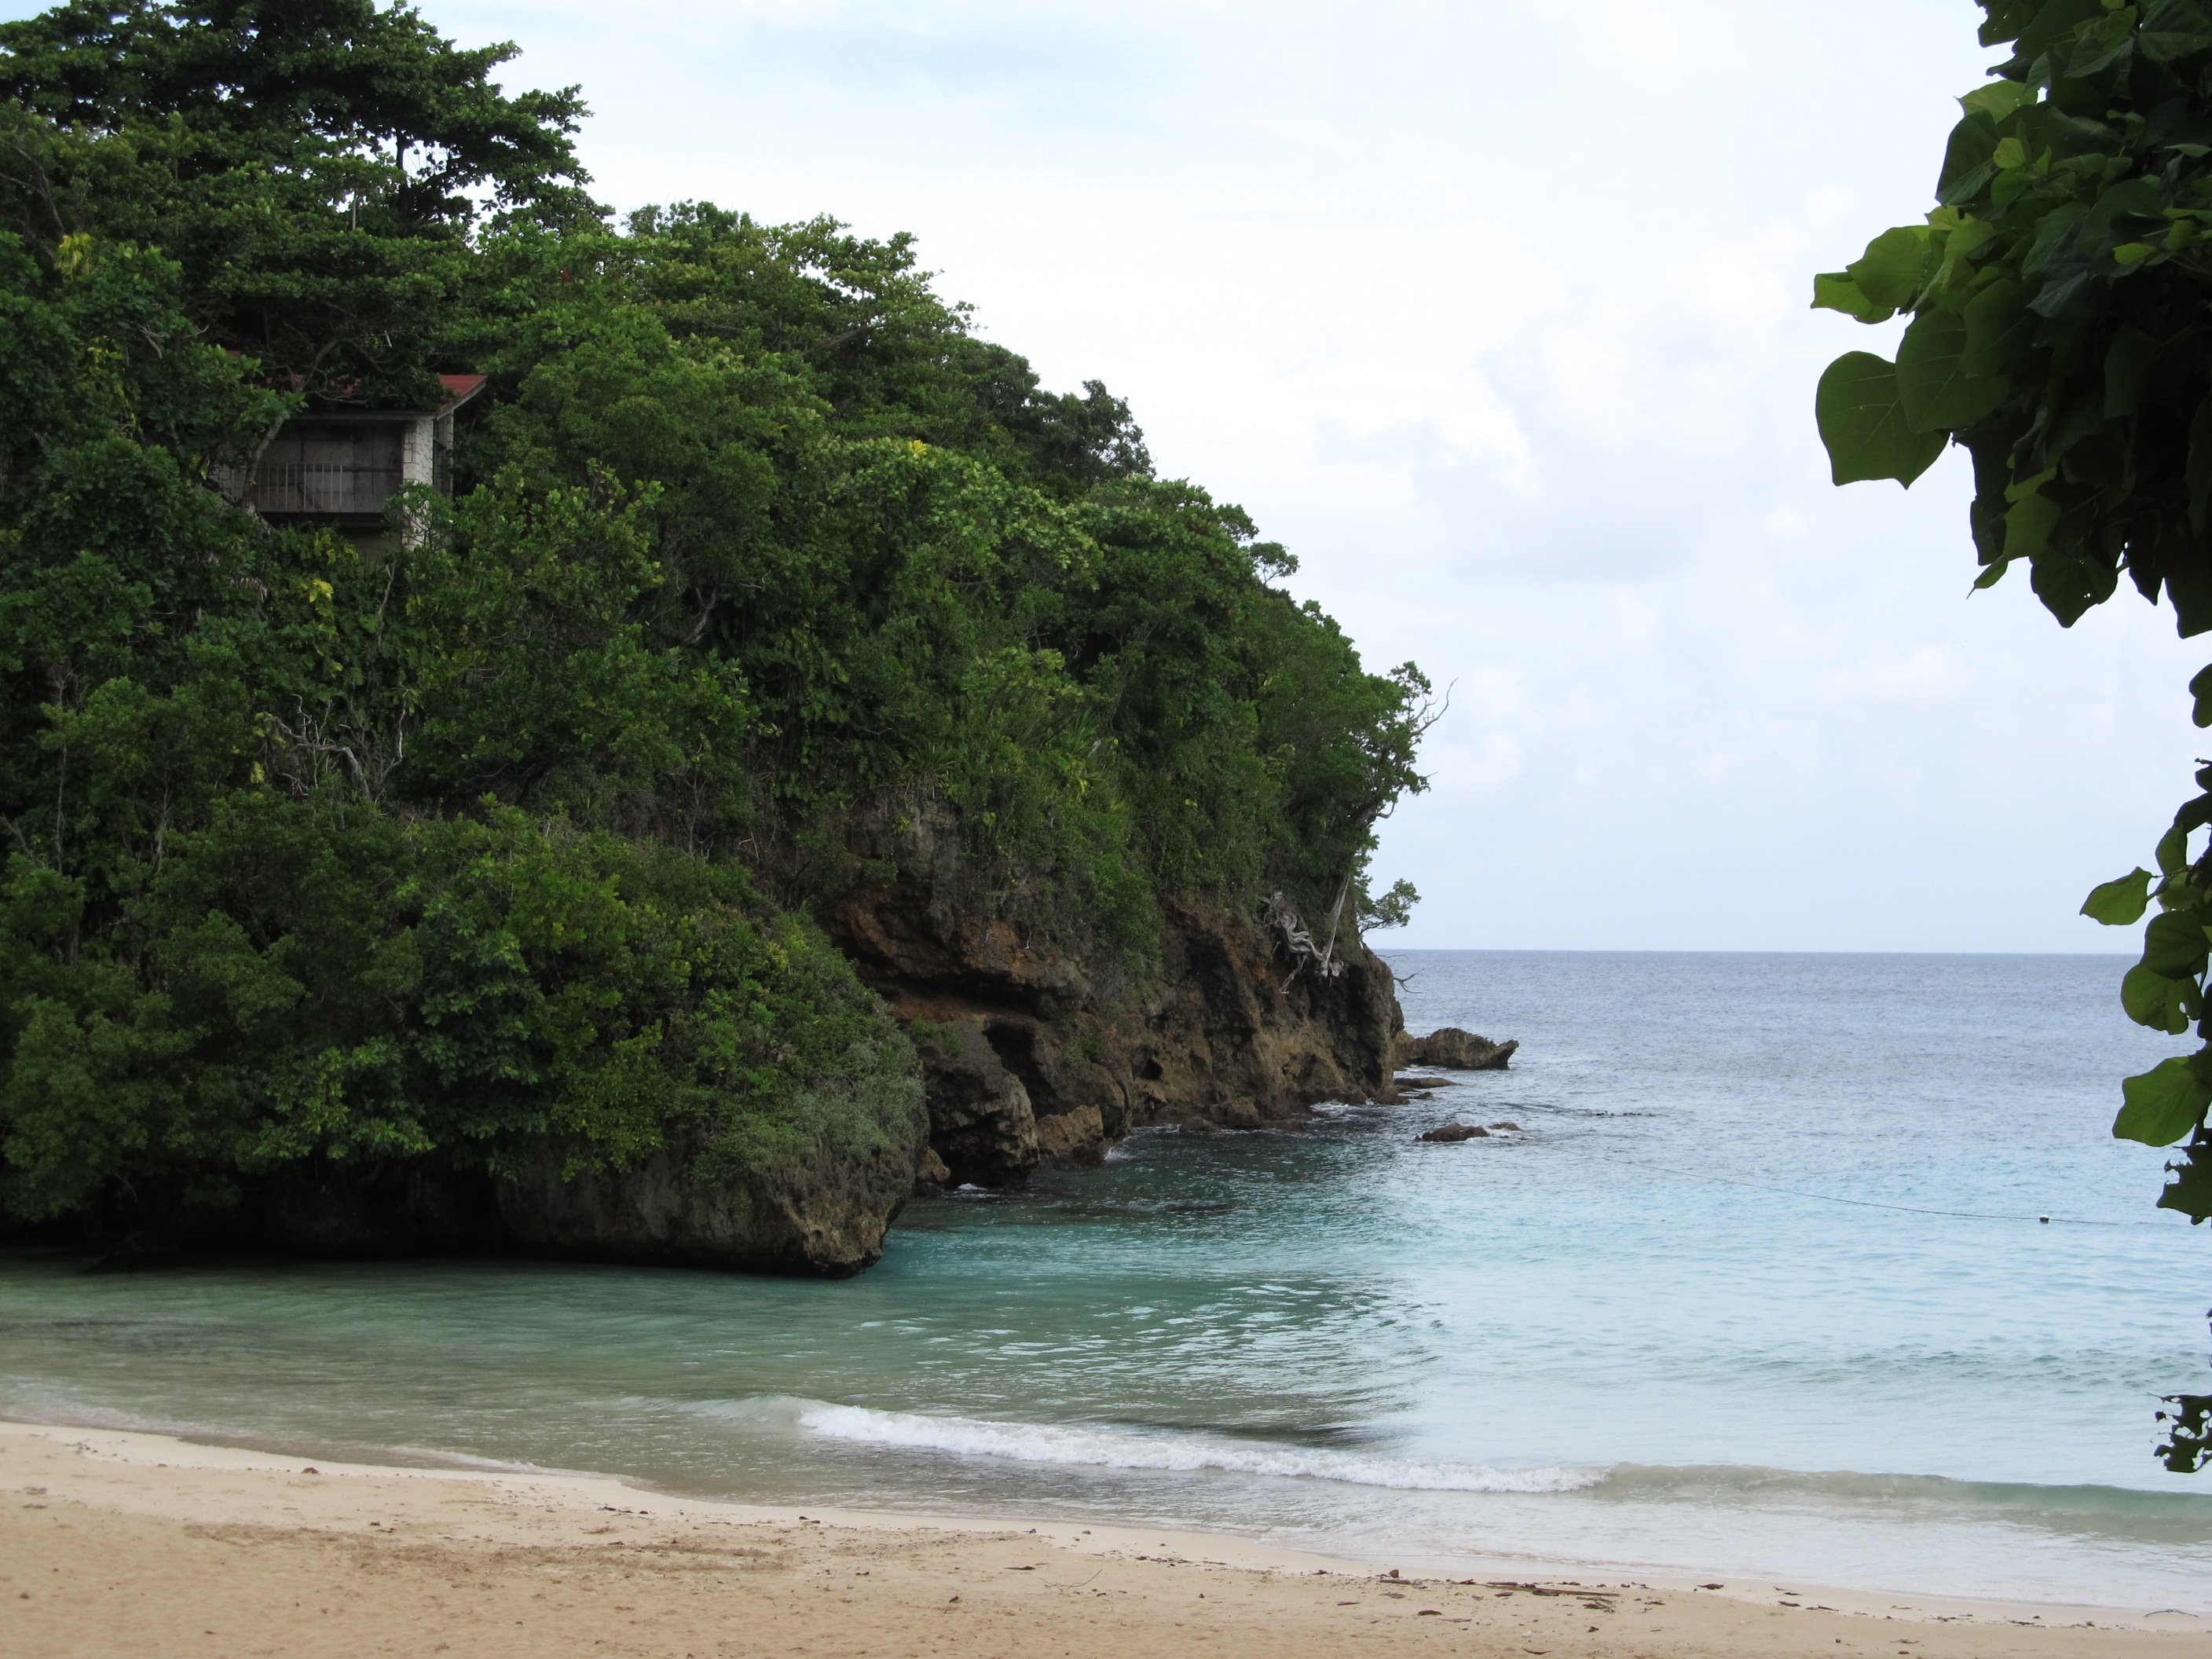 The Beach at Frenchman's Cove, Jamaica